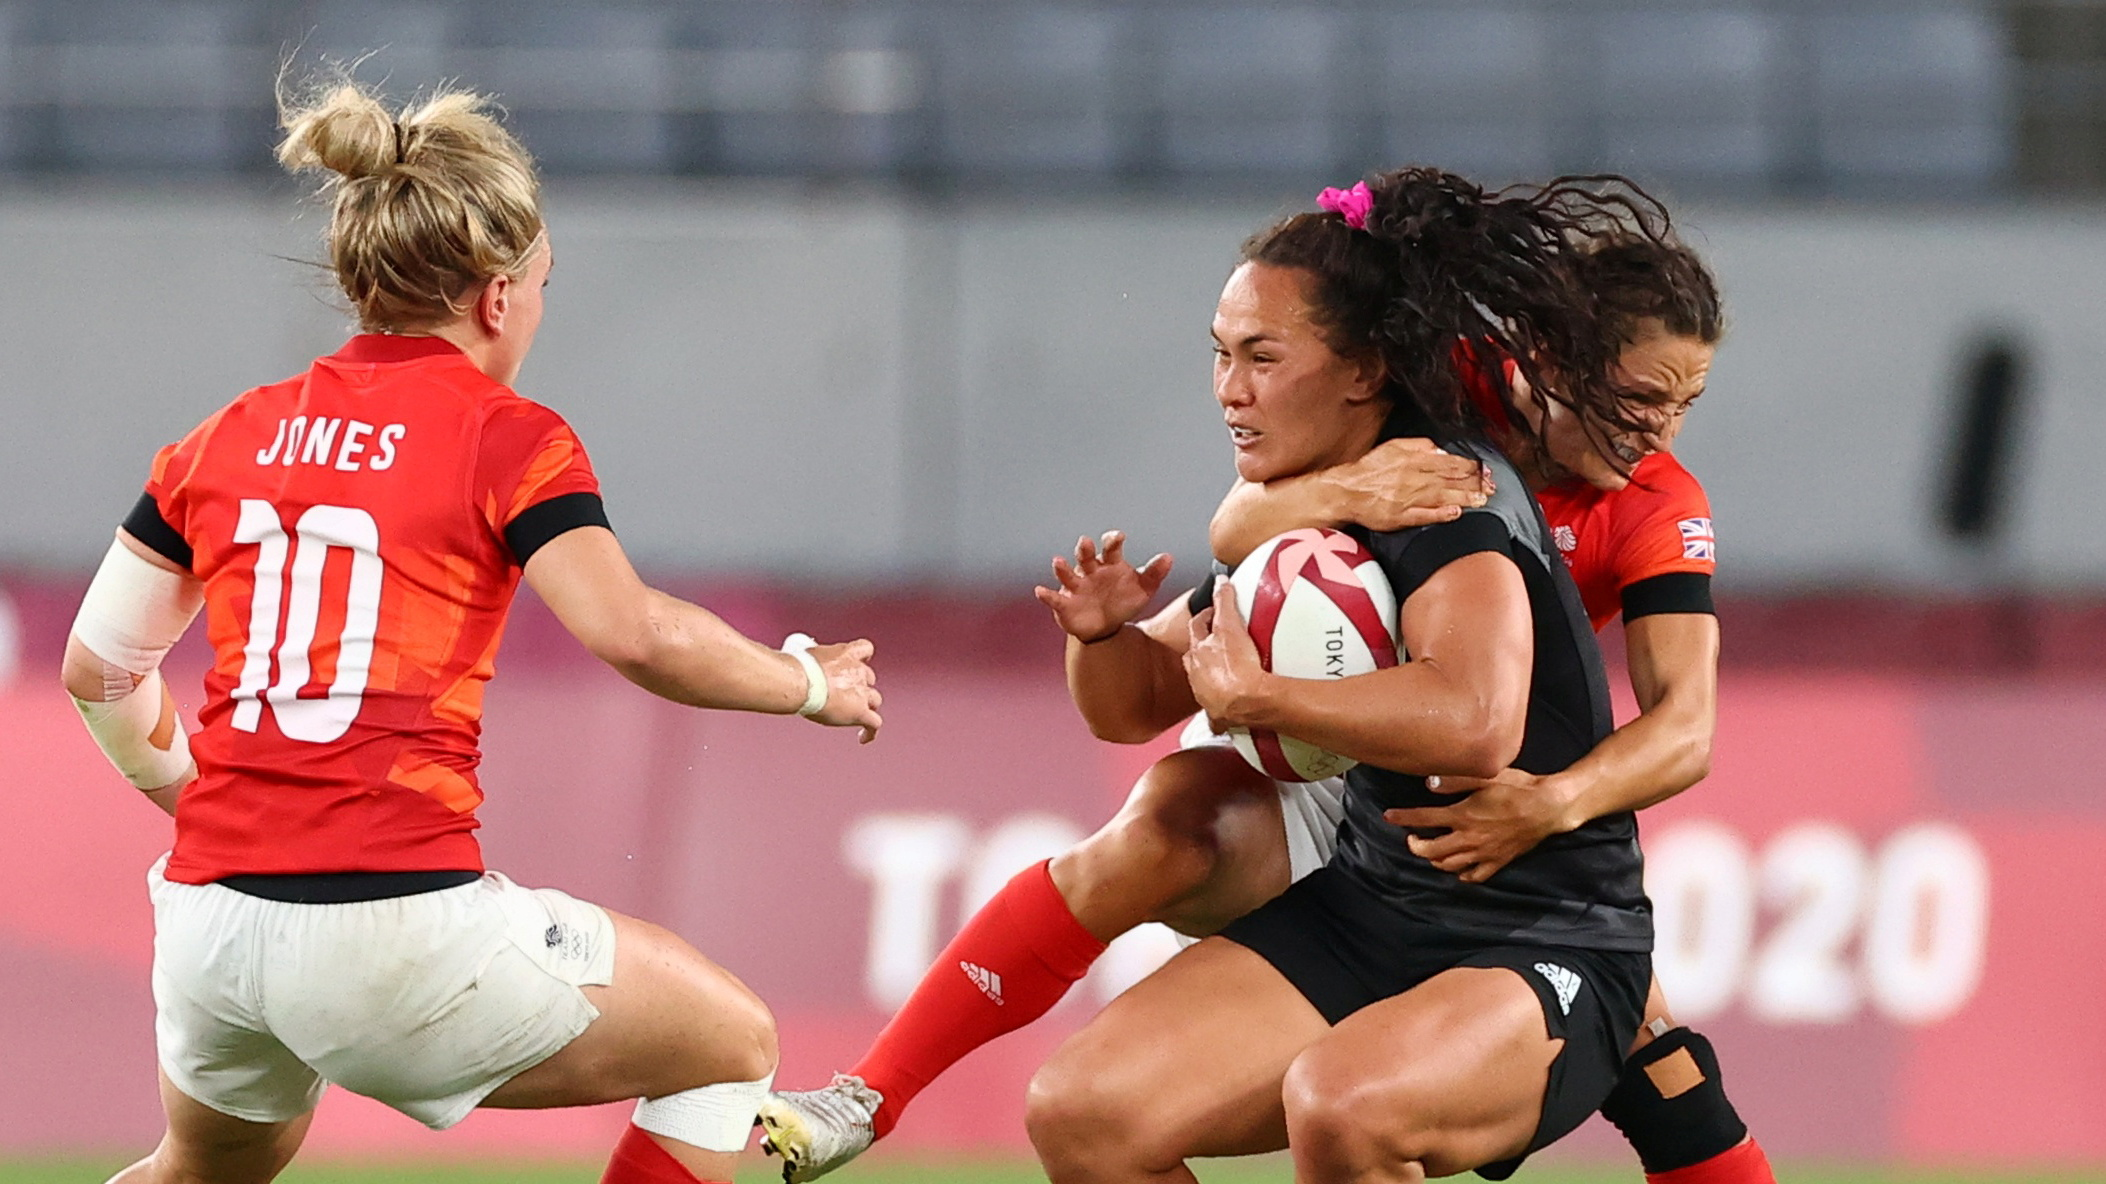 Tokyo 2020 Olympics - Rugby Sevens - Women - Pool A - New Zealand v Britain - Tokyo Stadium - Tokyo, Japan - July 29, 2021. Jasmine Joyce of Britain in action with Portia Woodman of New Zealand. REUTERS/Andrew Boyers